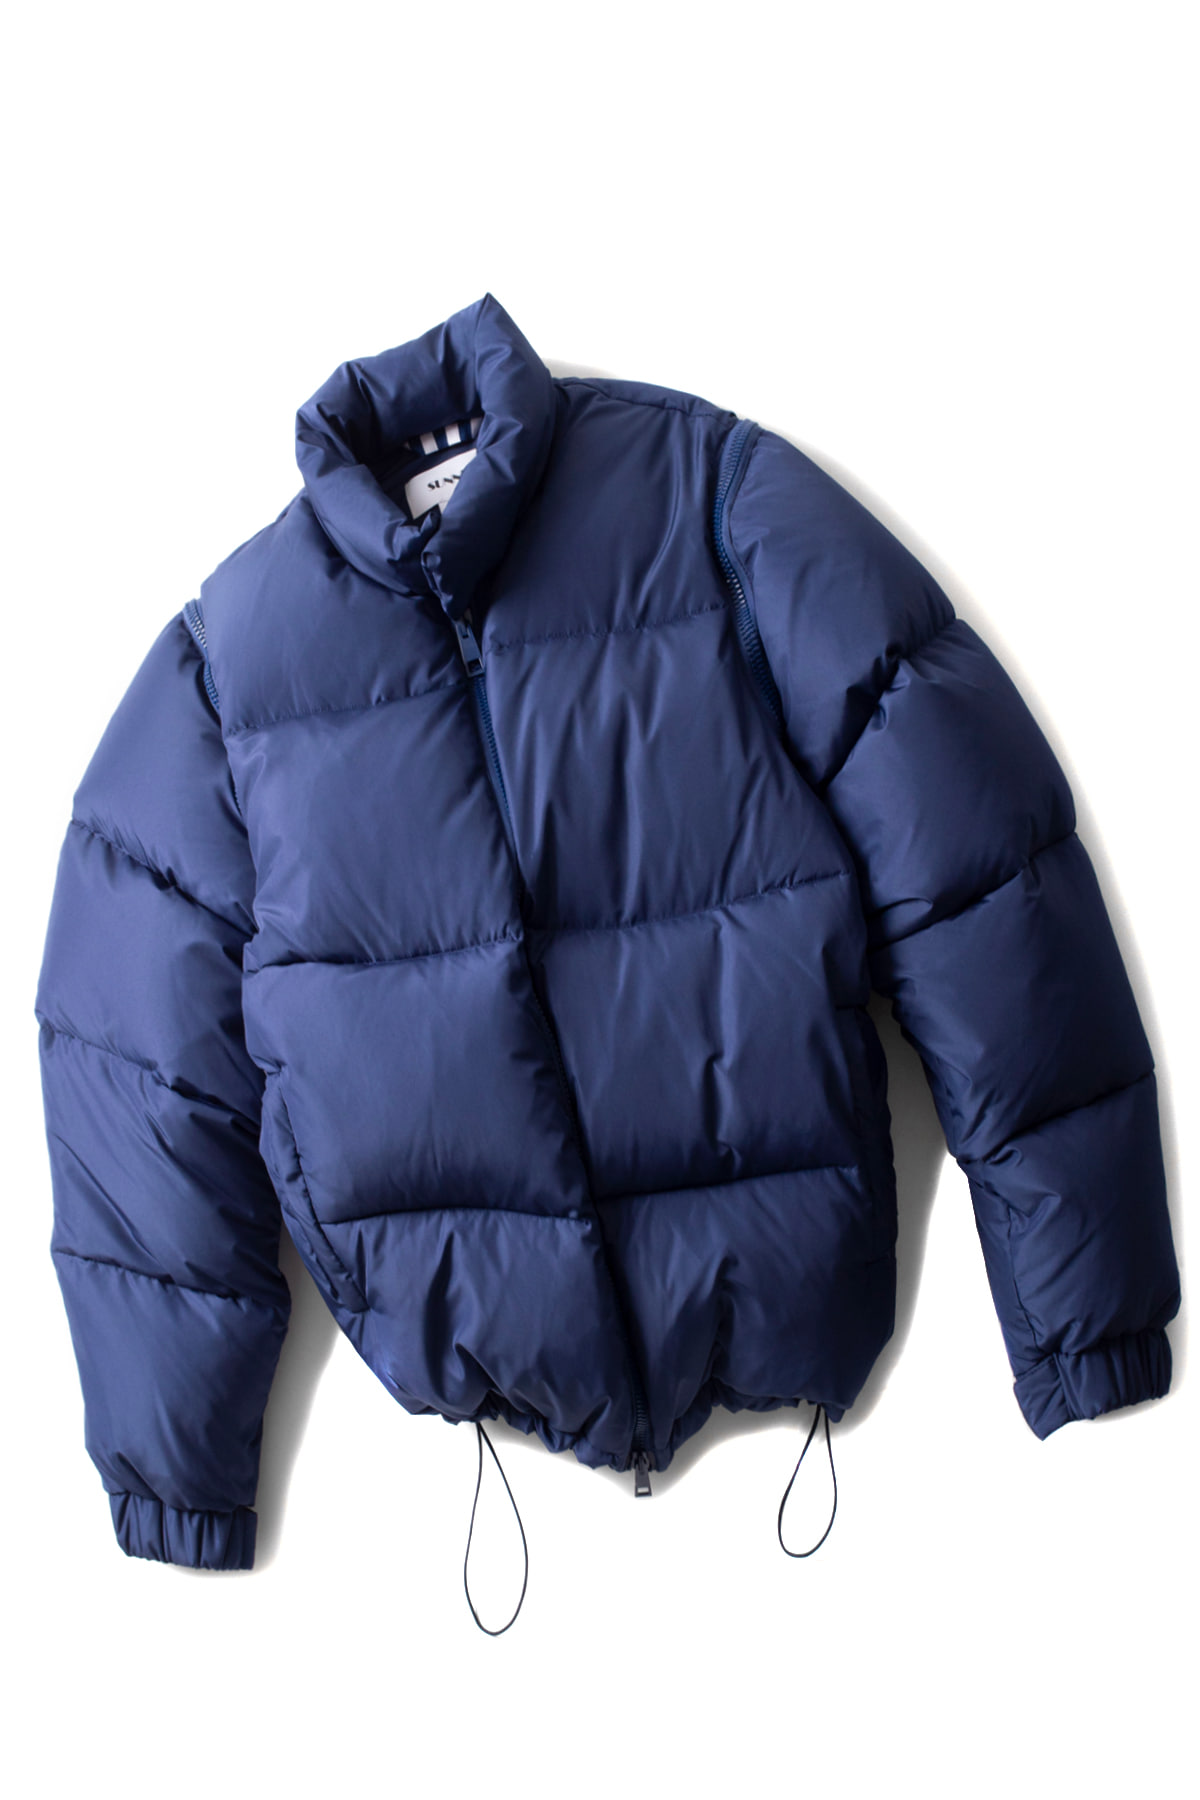 SUNNEI : Puffy Jacket (Blue)